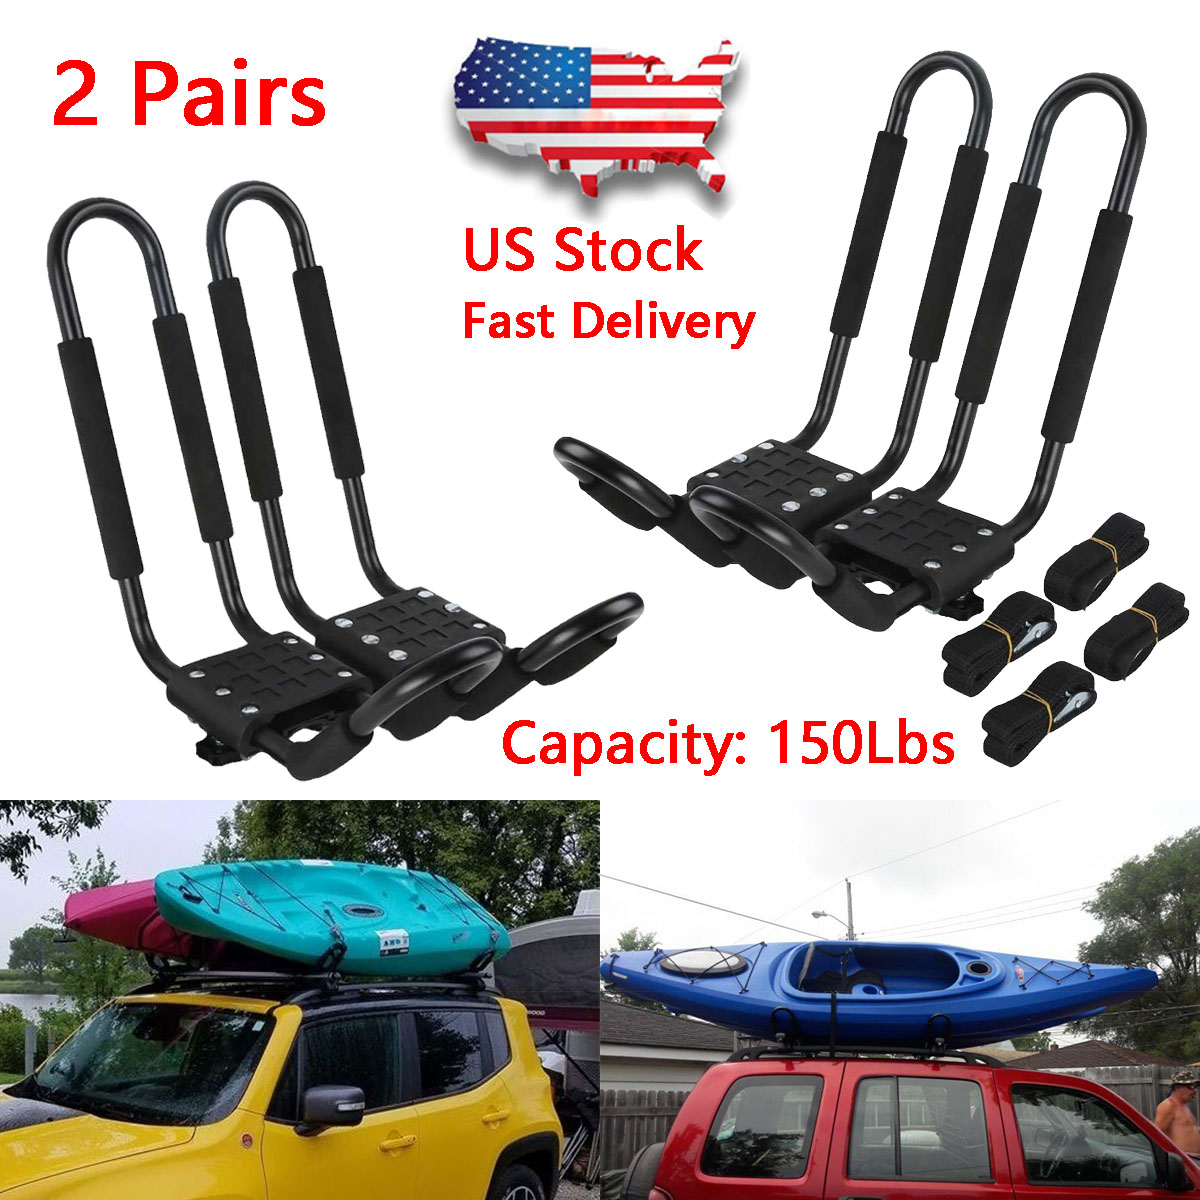 Kayak Roof Rack For Cars >> Details About 2 Pairs Universal Roof J Bar Rack Kayak Boat Canoe Car Suv Top Mount Carrier New